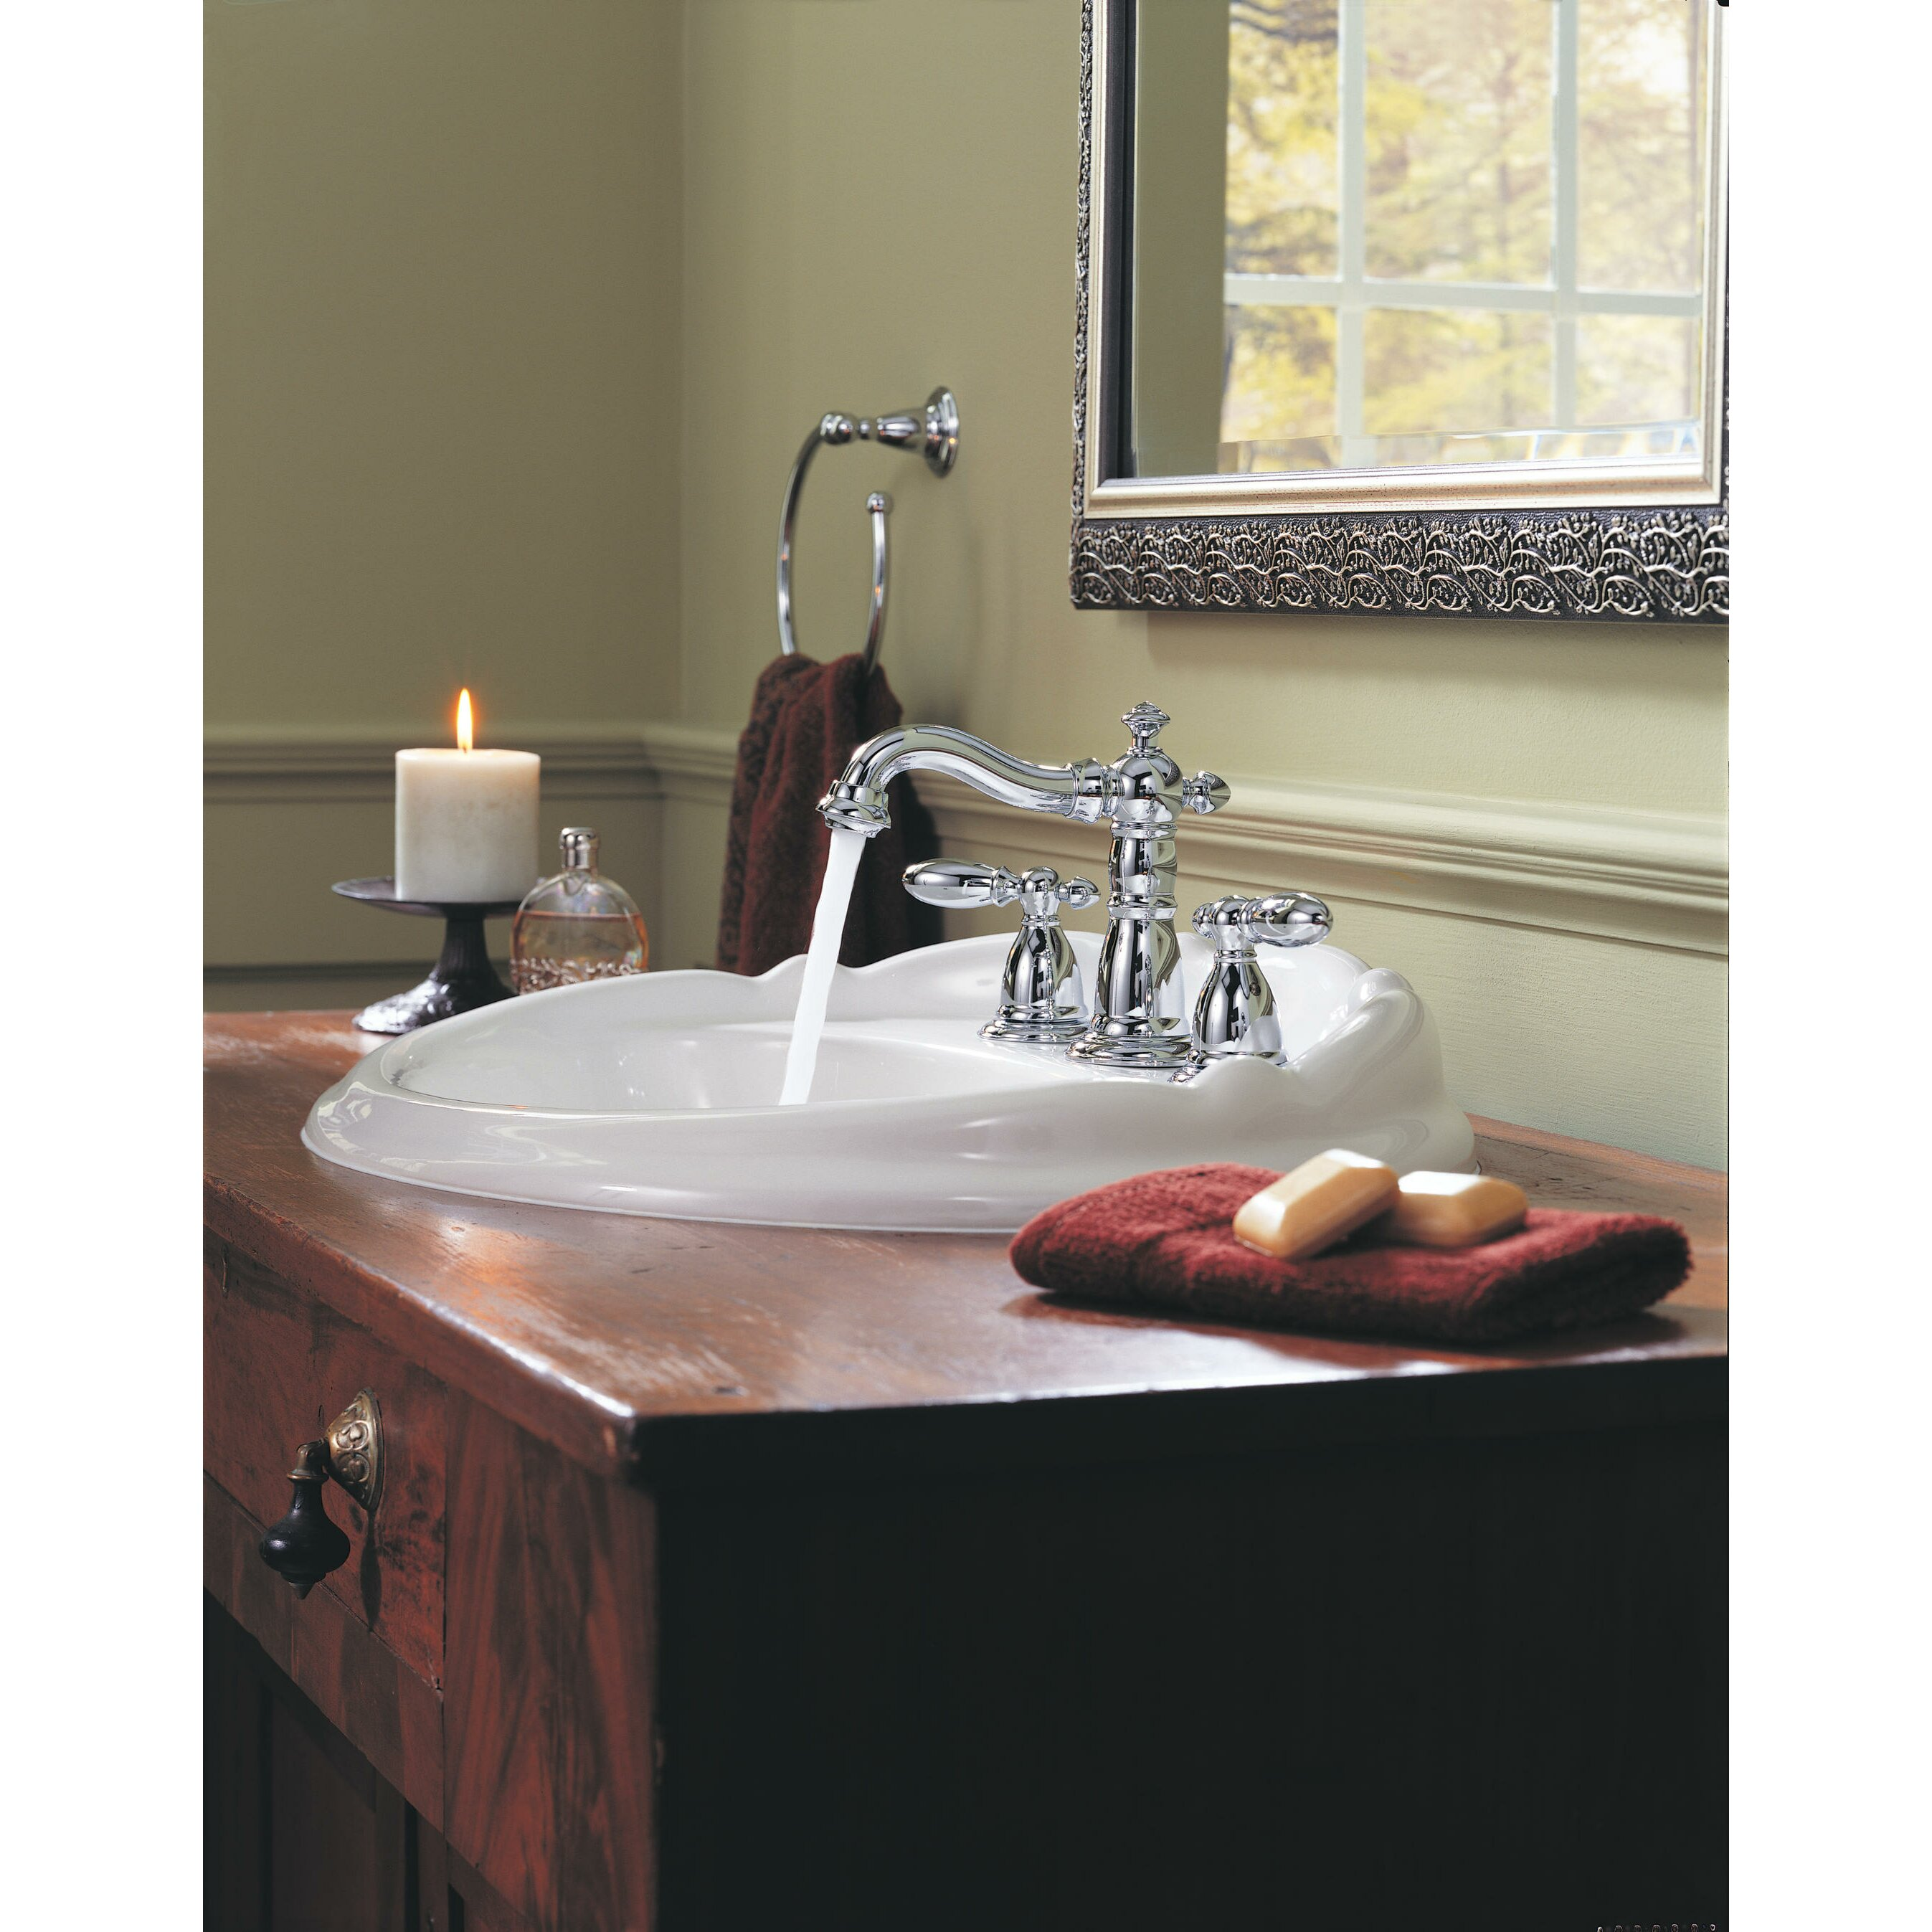 Delta Victorian Standard Bathroom Faucet Lever. Delta Victorian Standard Bathroom Faucet Lever   Reviews   Wayfair